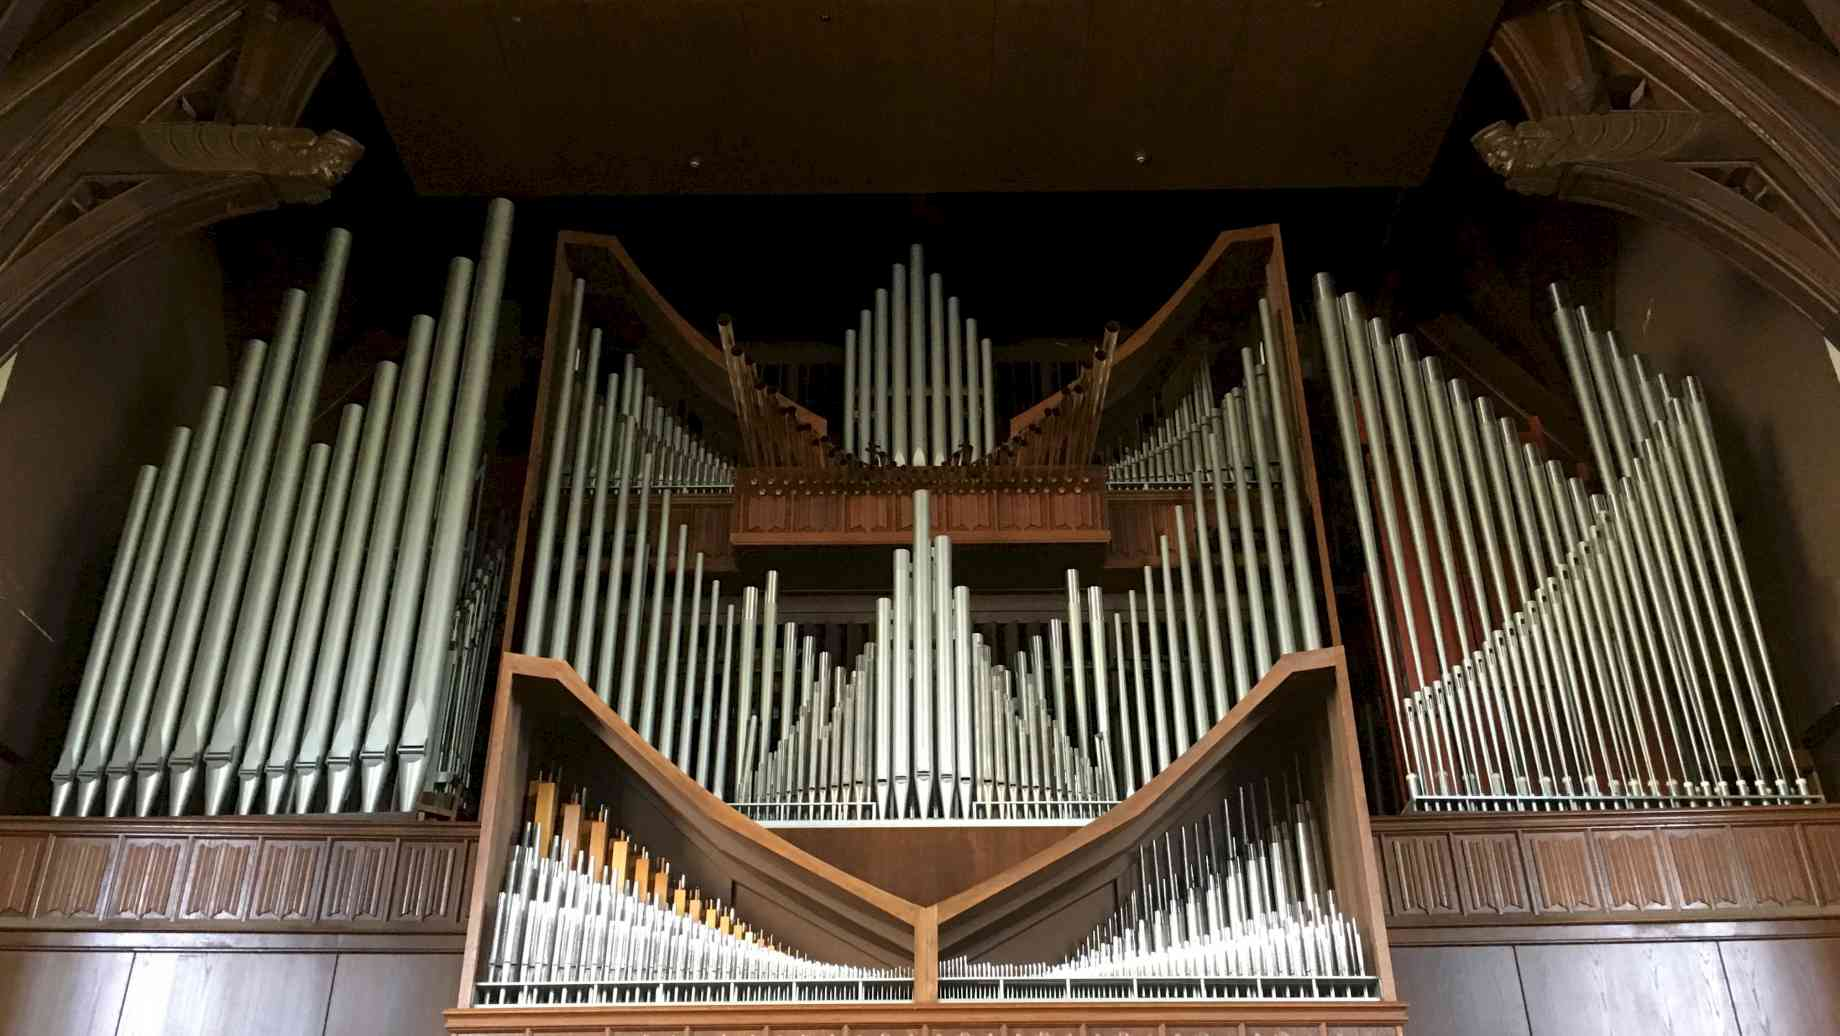 UA Organ Pipes